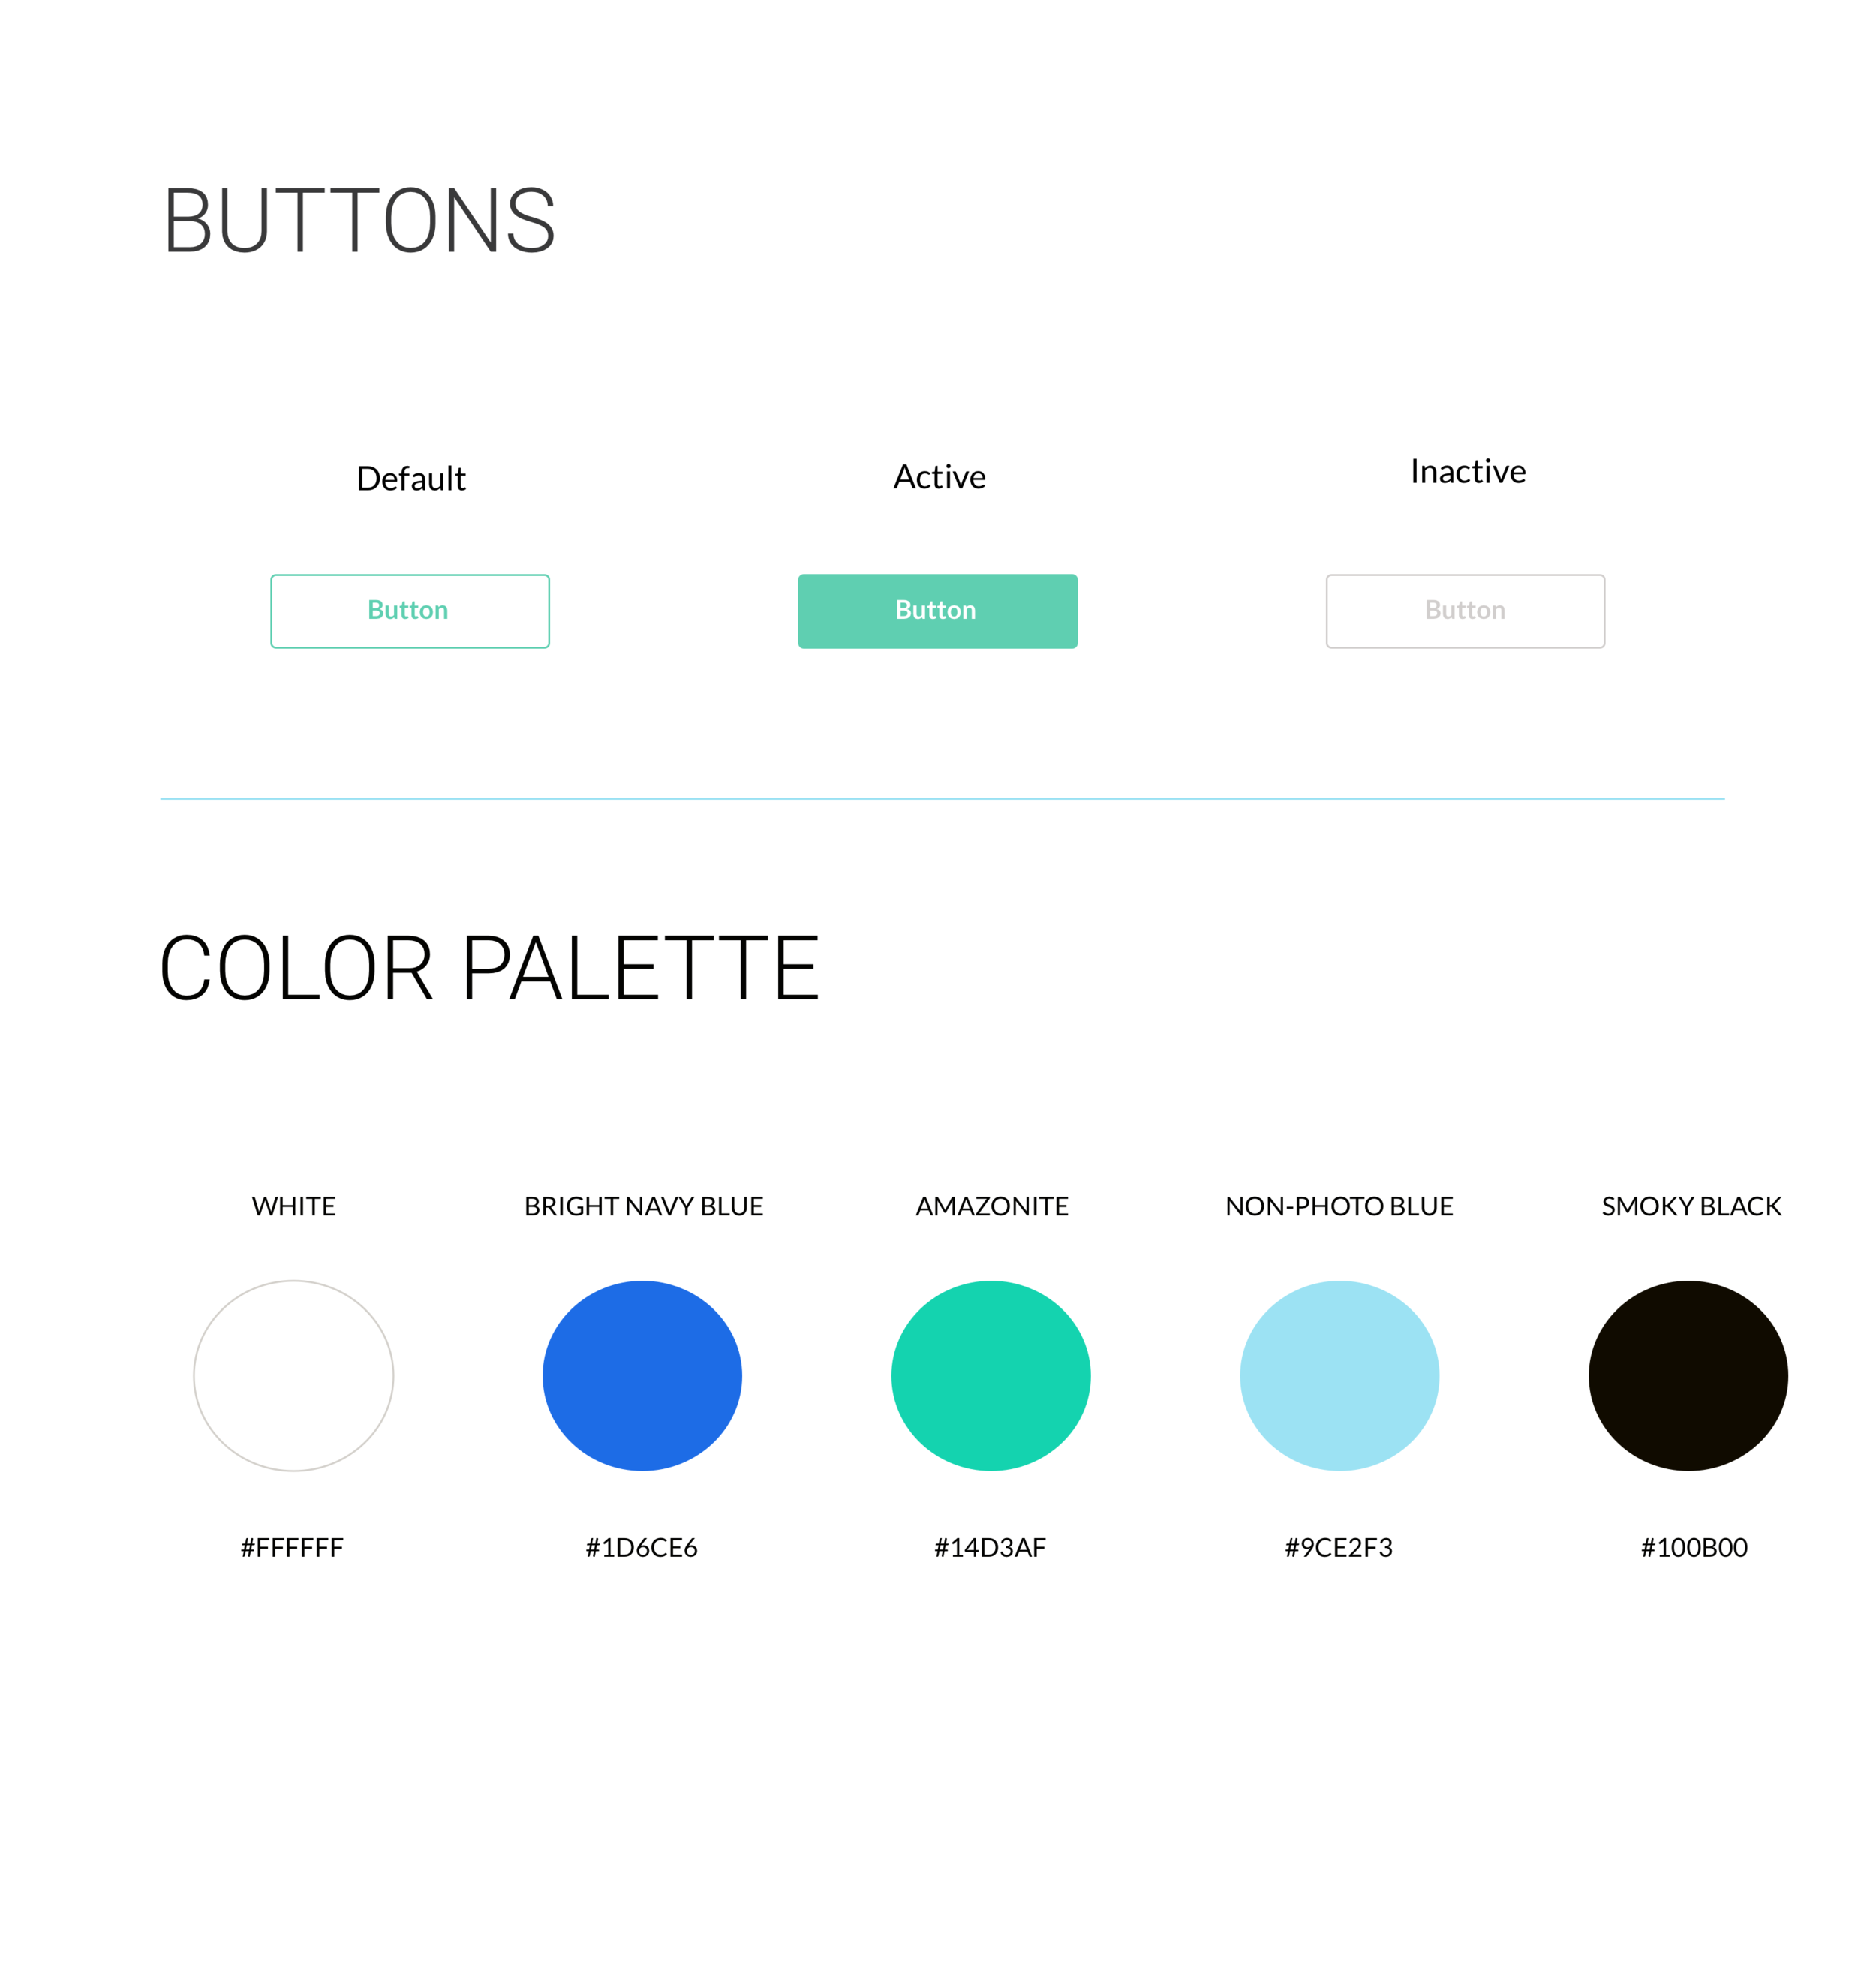 buttons and color palette